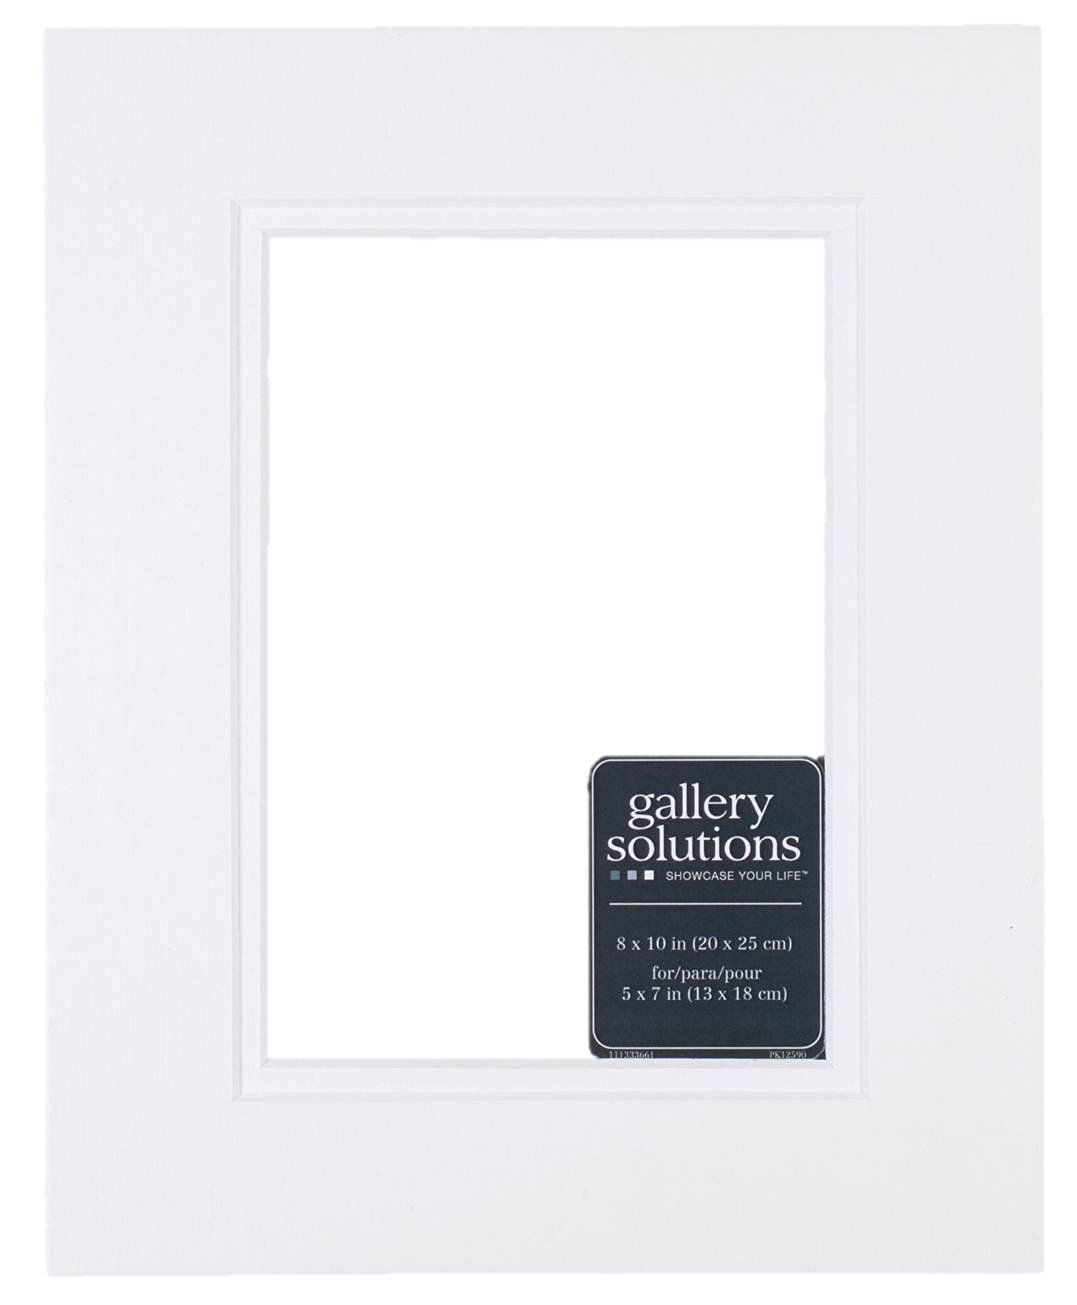 Gallery Solutions Custom Bevel Cut Double White Mat for 8x10 Picture Frame with 5x7 Opening